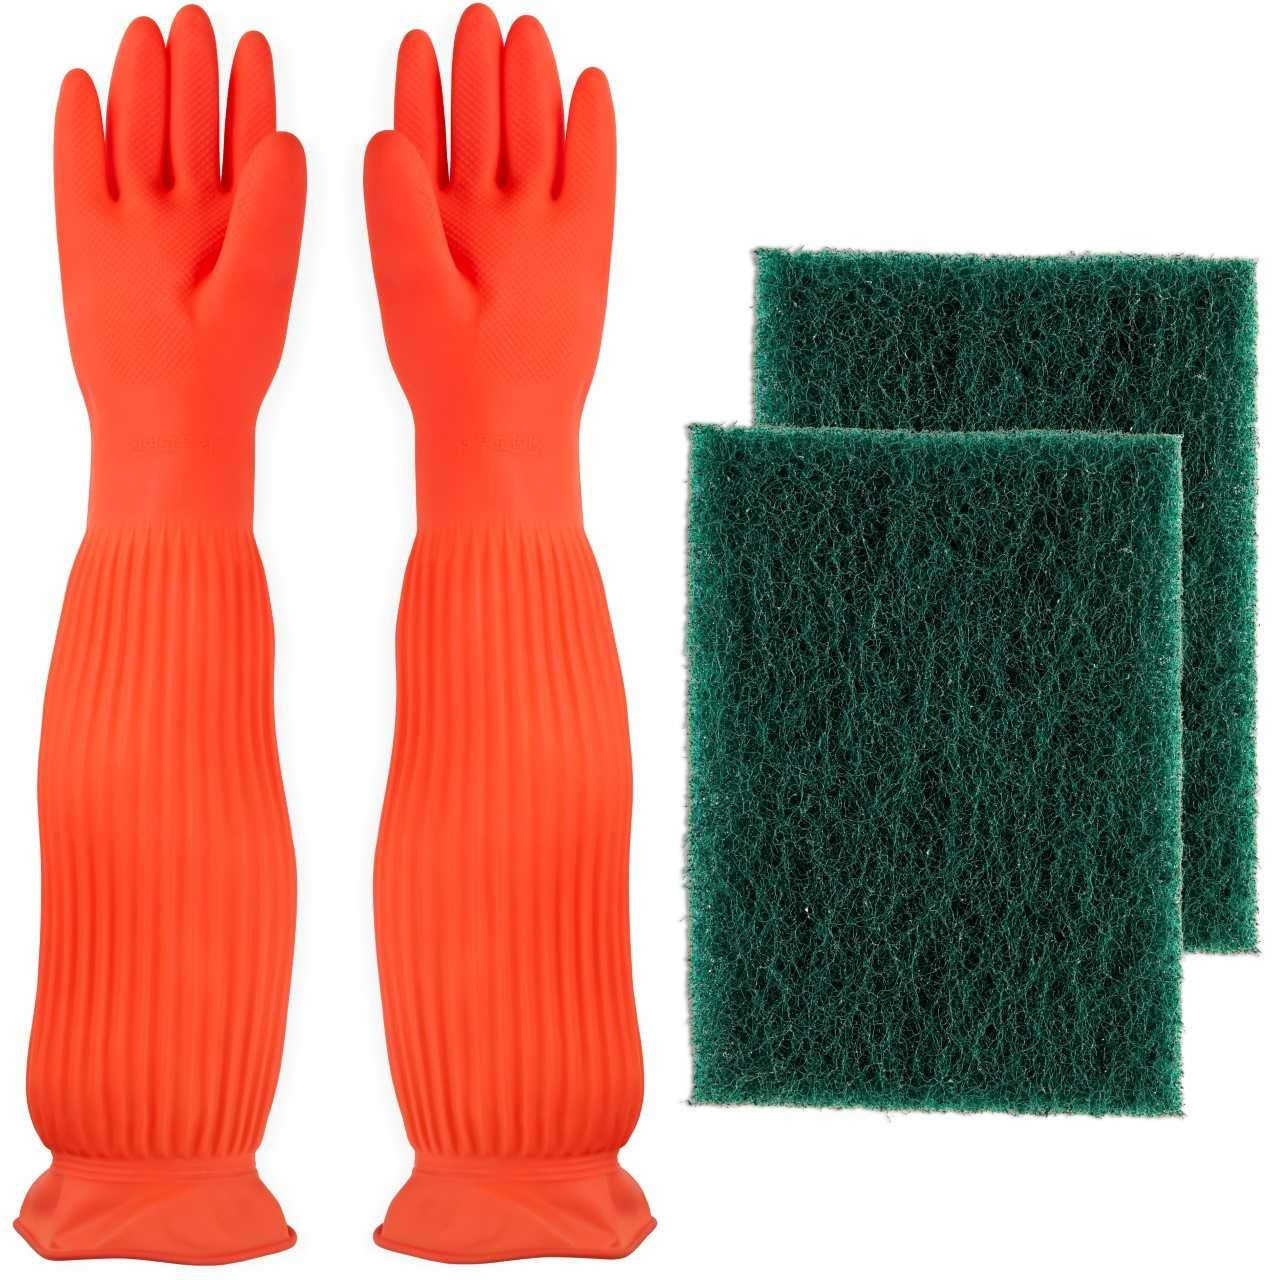 AroPaw Aquarium Cleaning Tools Set Includes Waterproof BPA Free Gloves, 2 Pack Algae Scraper Sponge Scrubber Pad, Aquarium Cleaner Fish Tank Cleaner